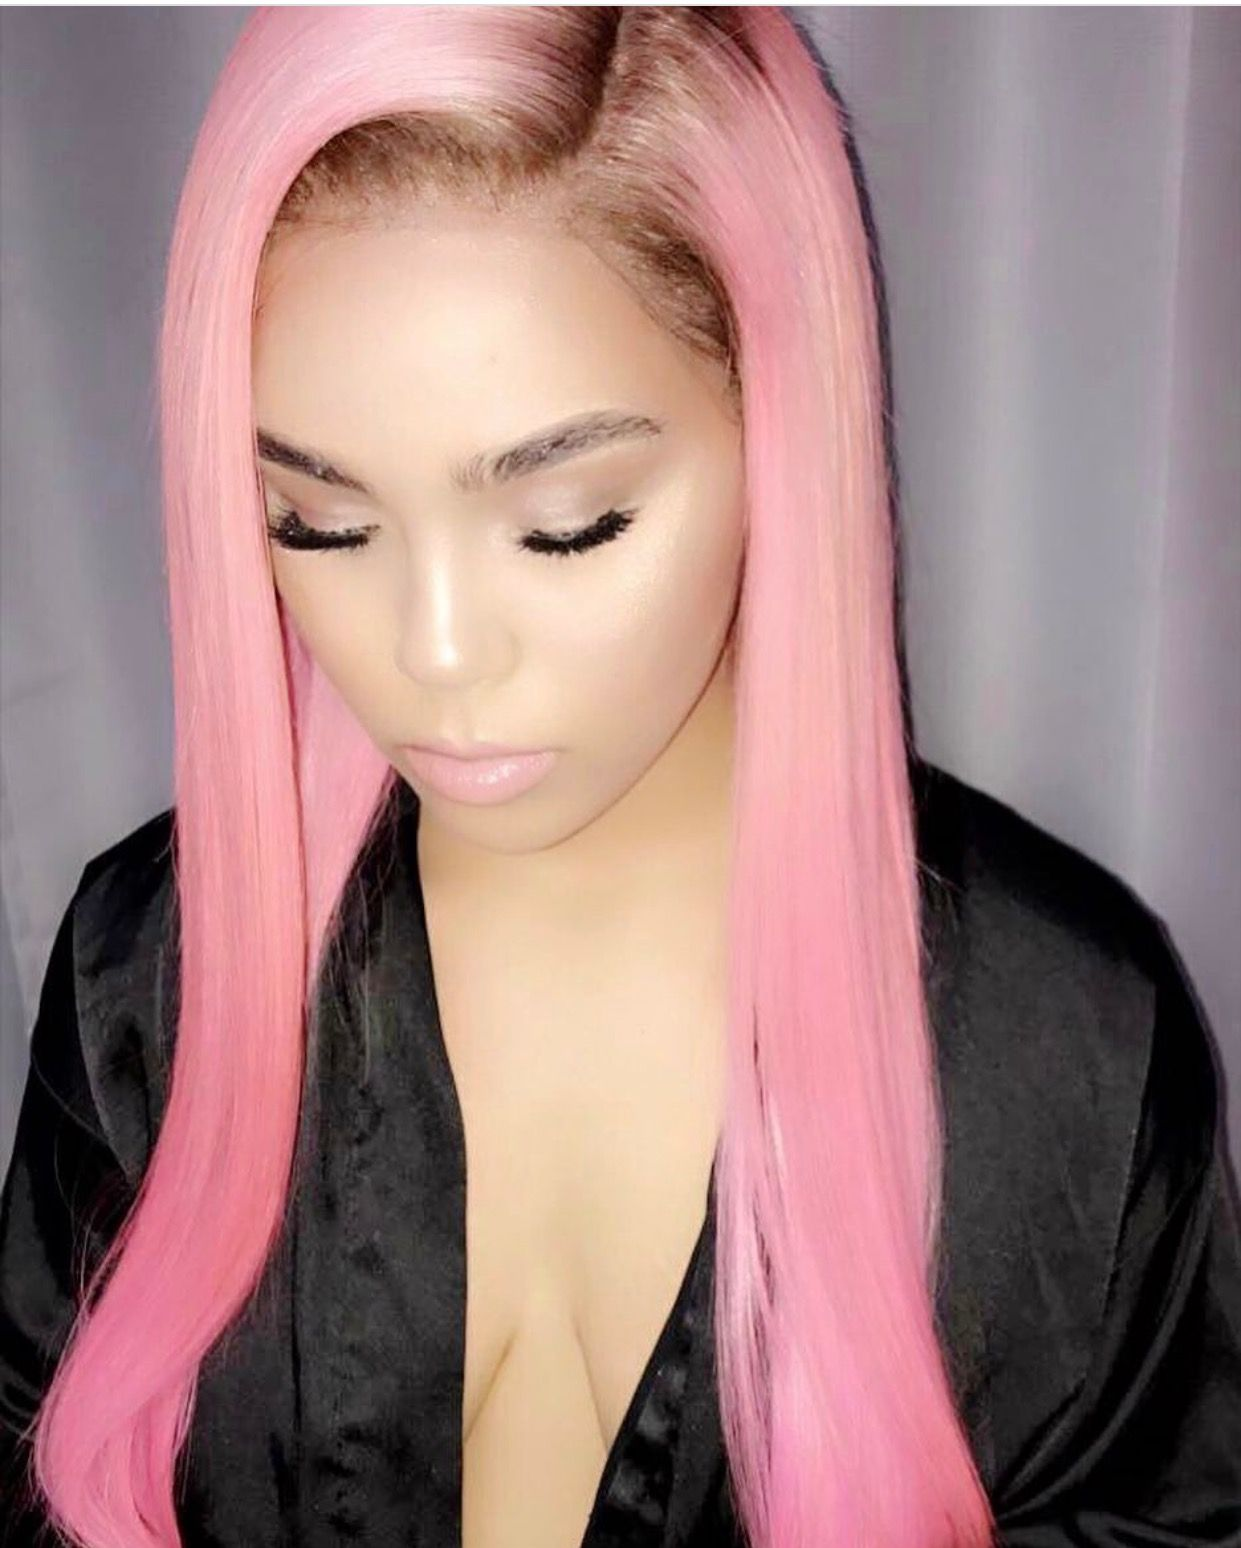 Pin By Cheyanne On Colored Weaves Hair In 2018 Pinterest Hair